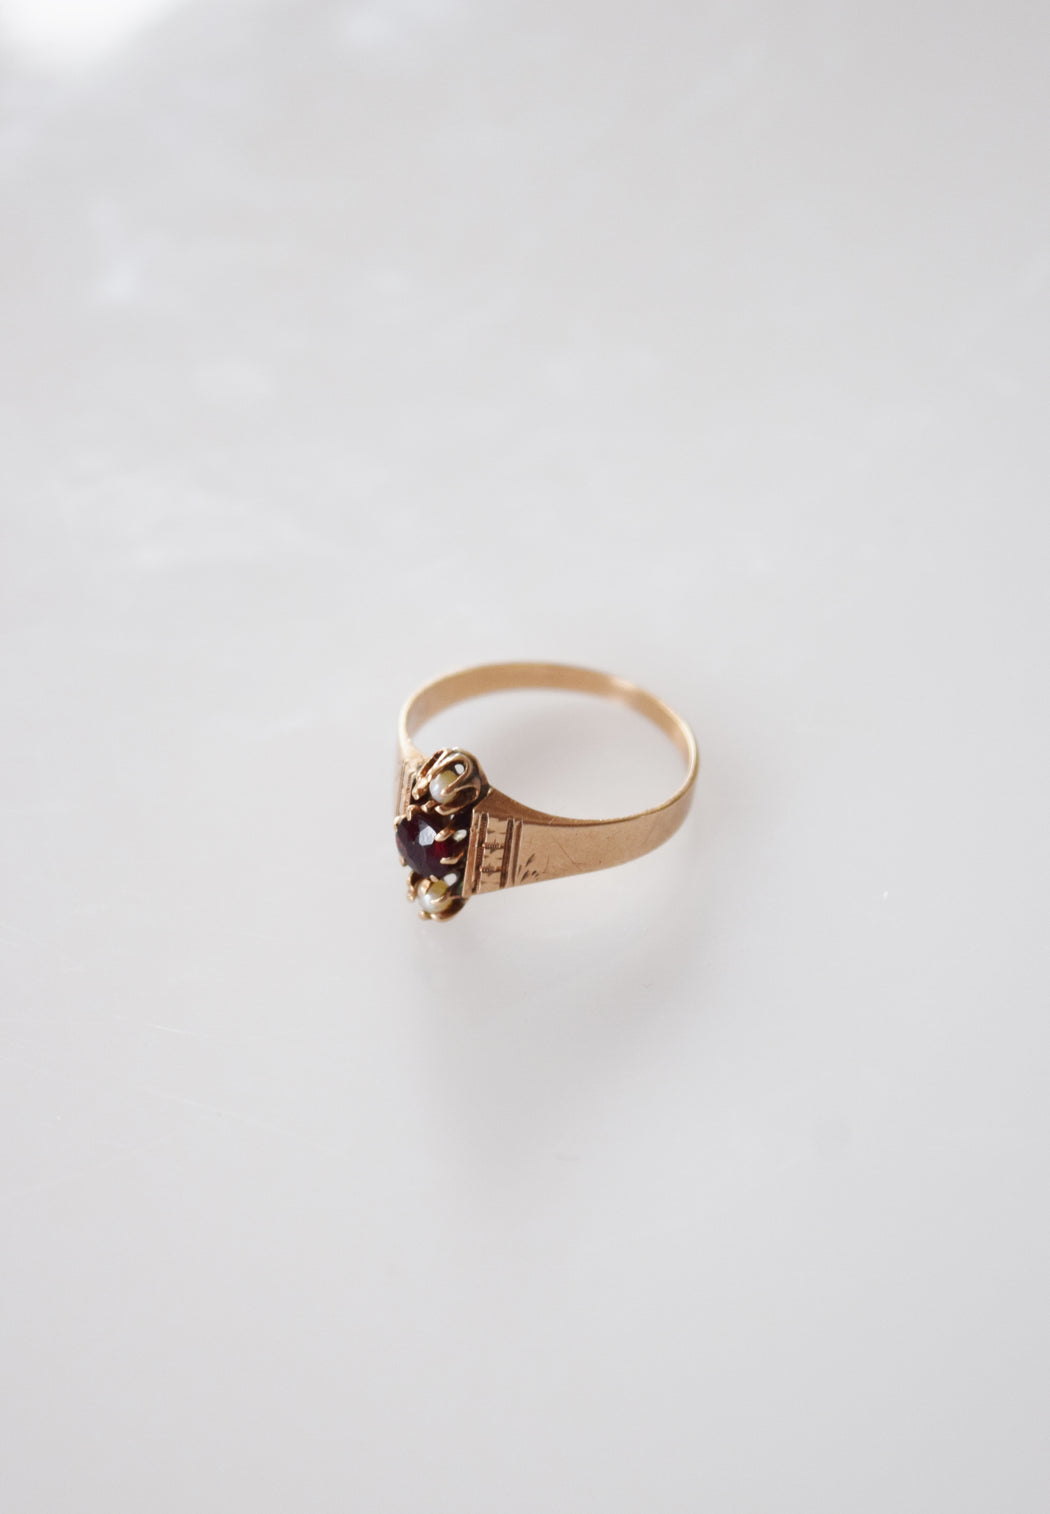 Antique Victorian 10kt Gold, Garnet and Pearl Ring | Sz. 6